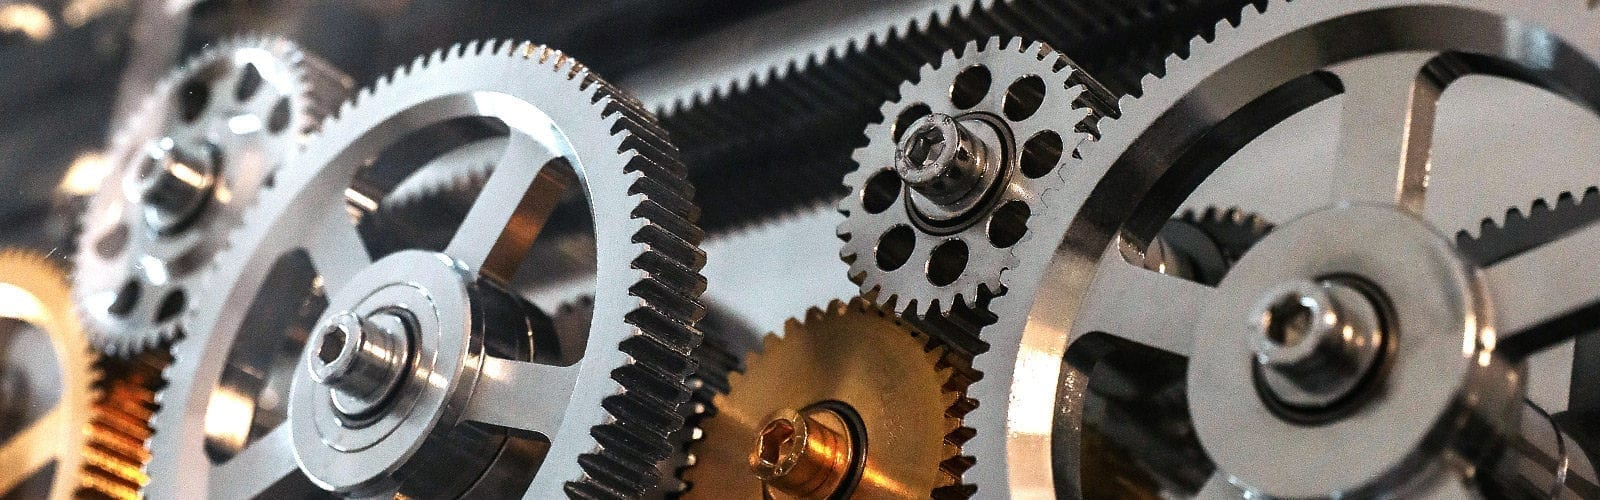 small and large silver and brass mechanical gears operating desk of founder Randy Garcia